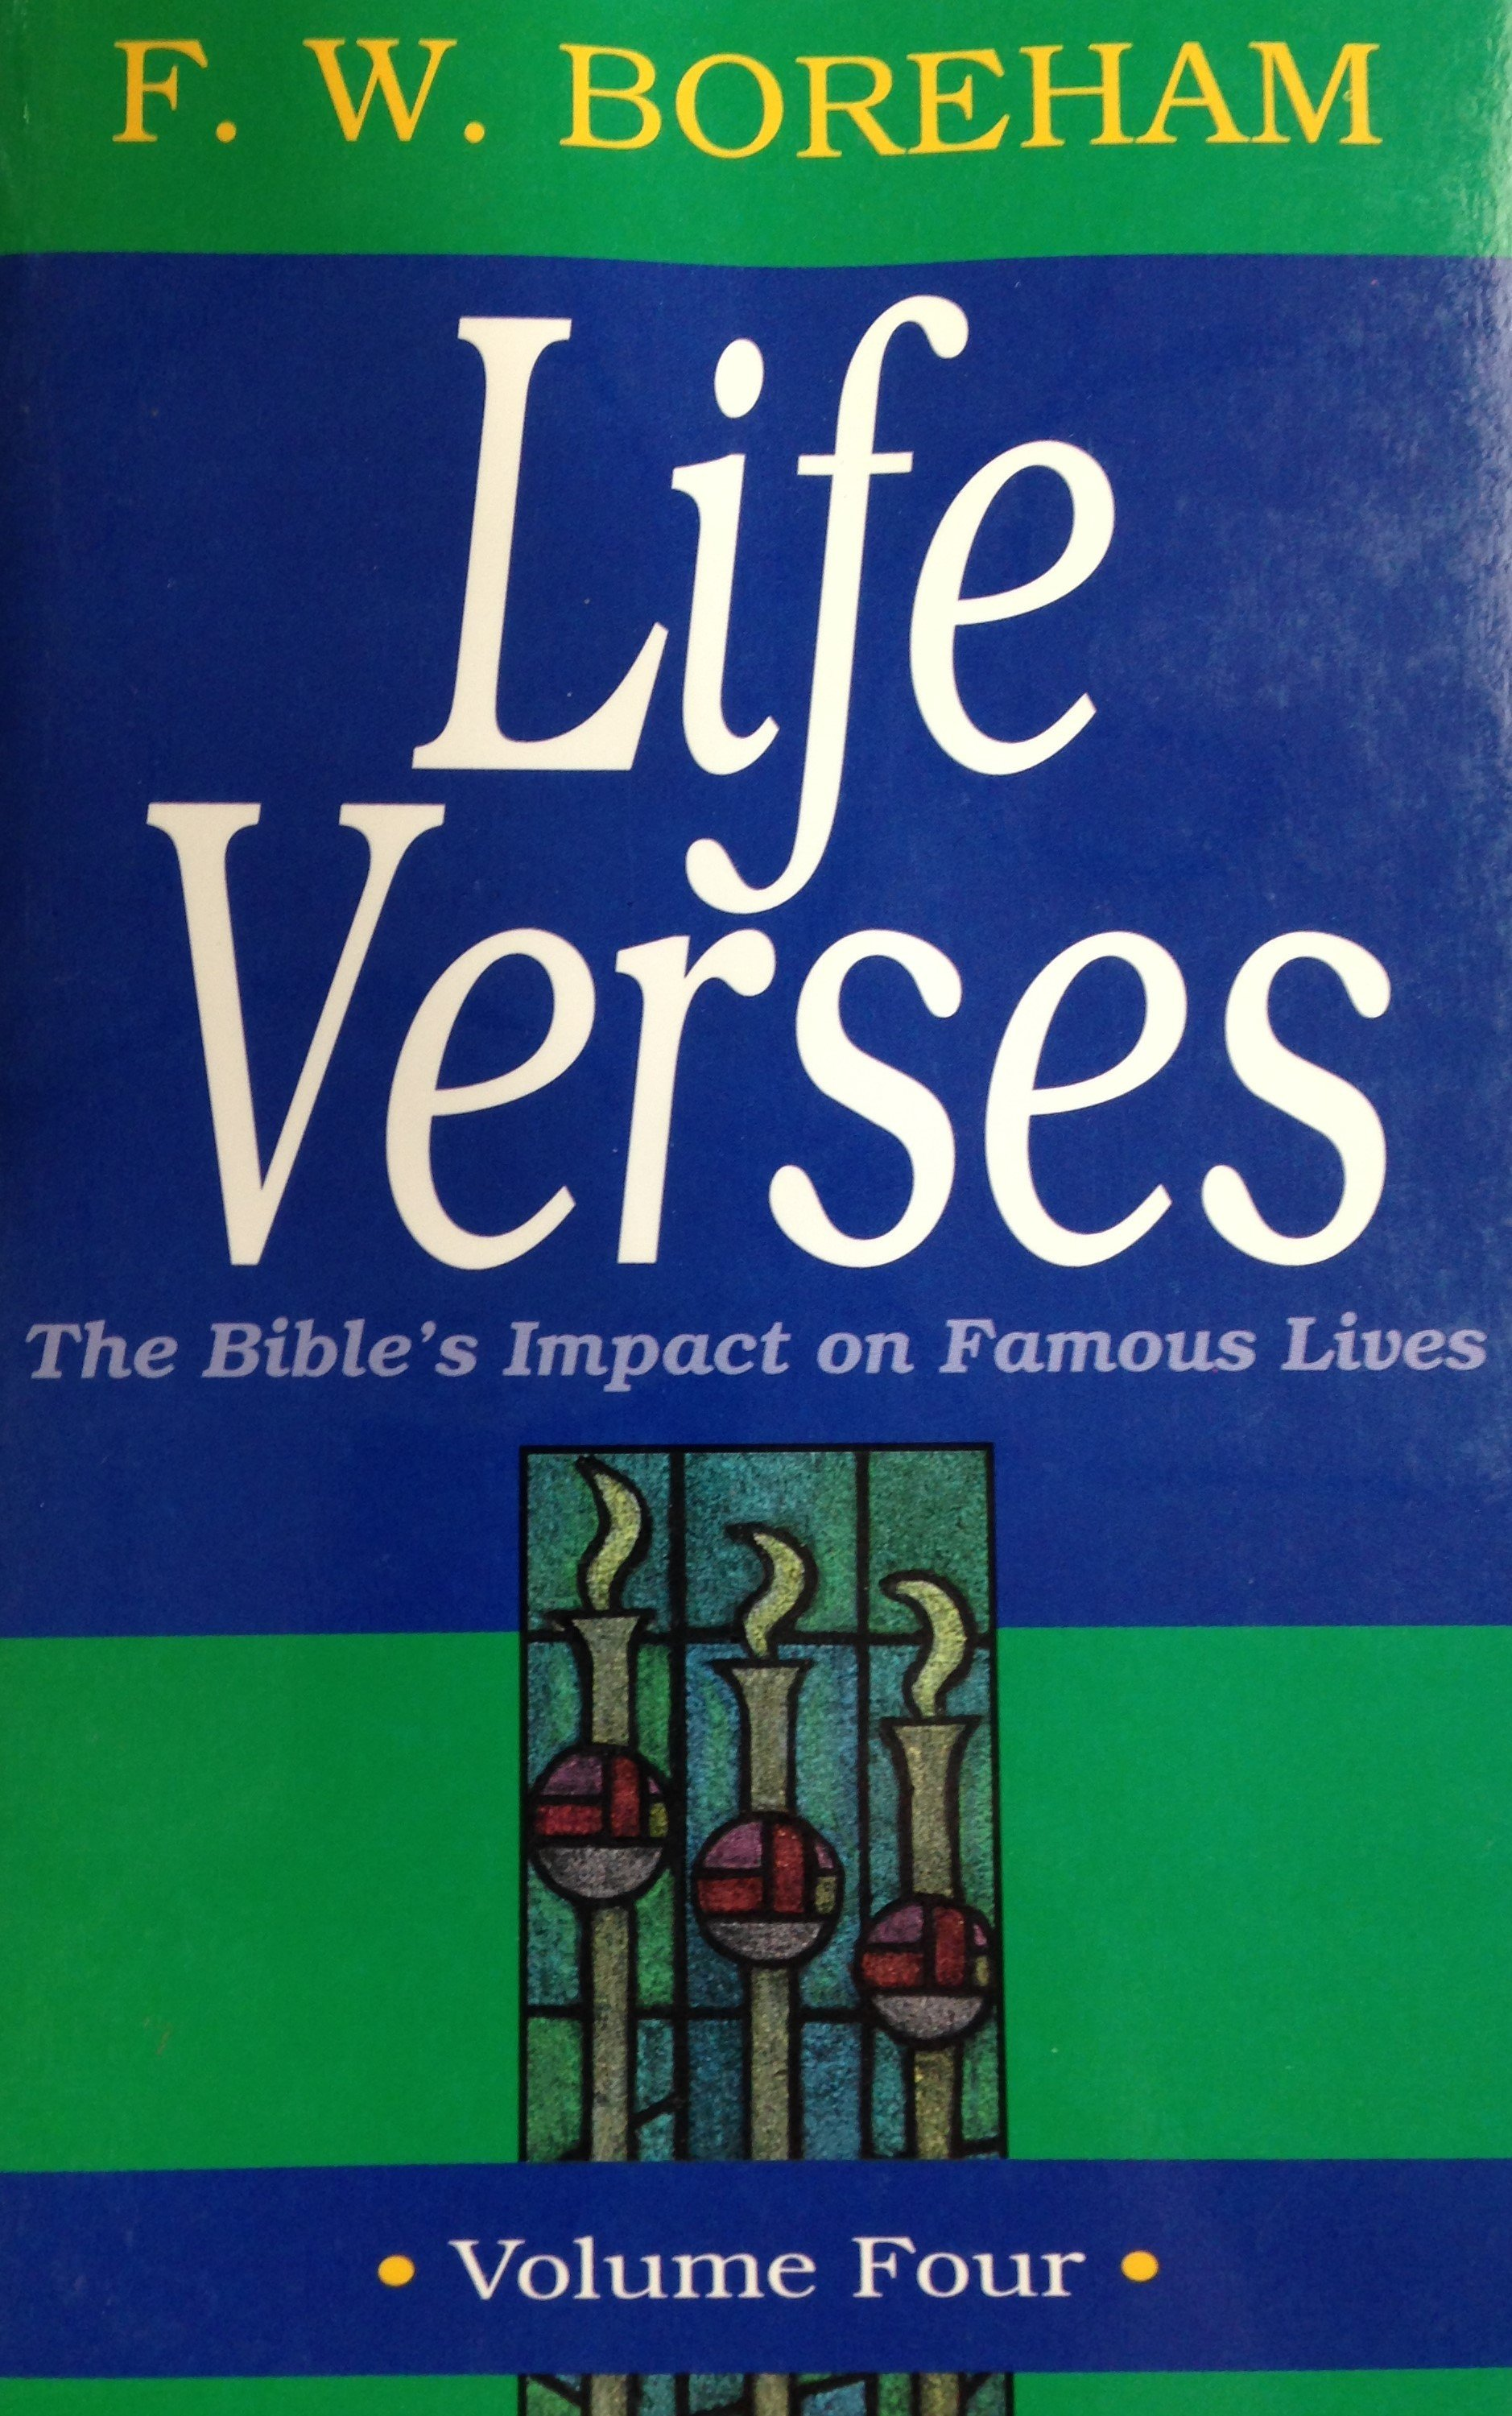 Life Verses:  The Bible's Impact on Famous Lives Volume 4 by F.W. Boreham 00105